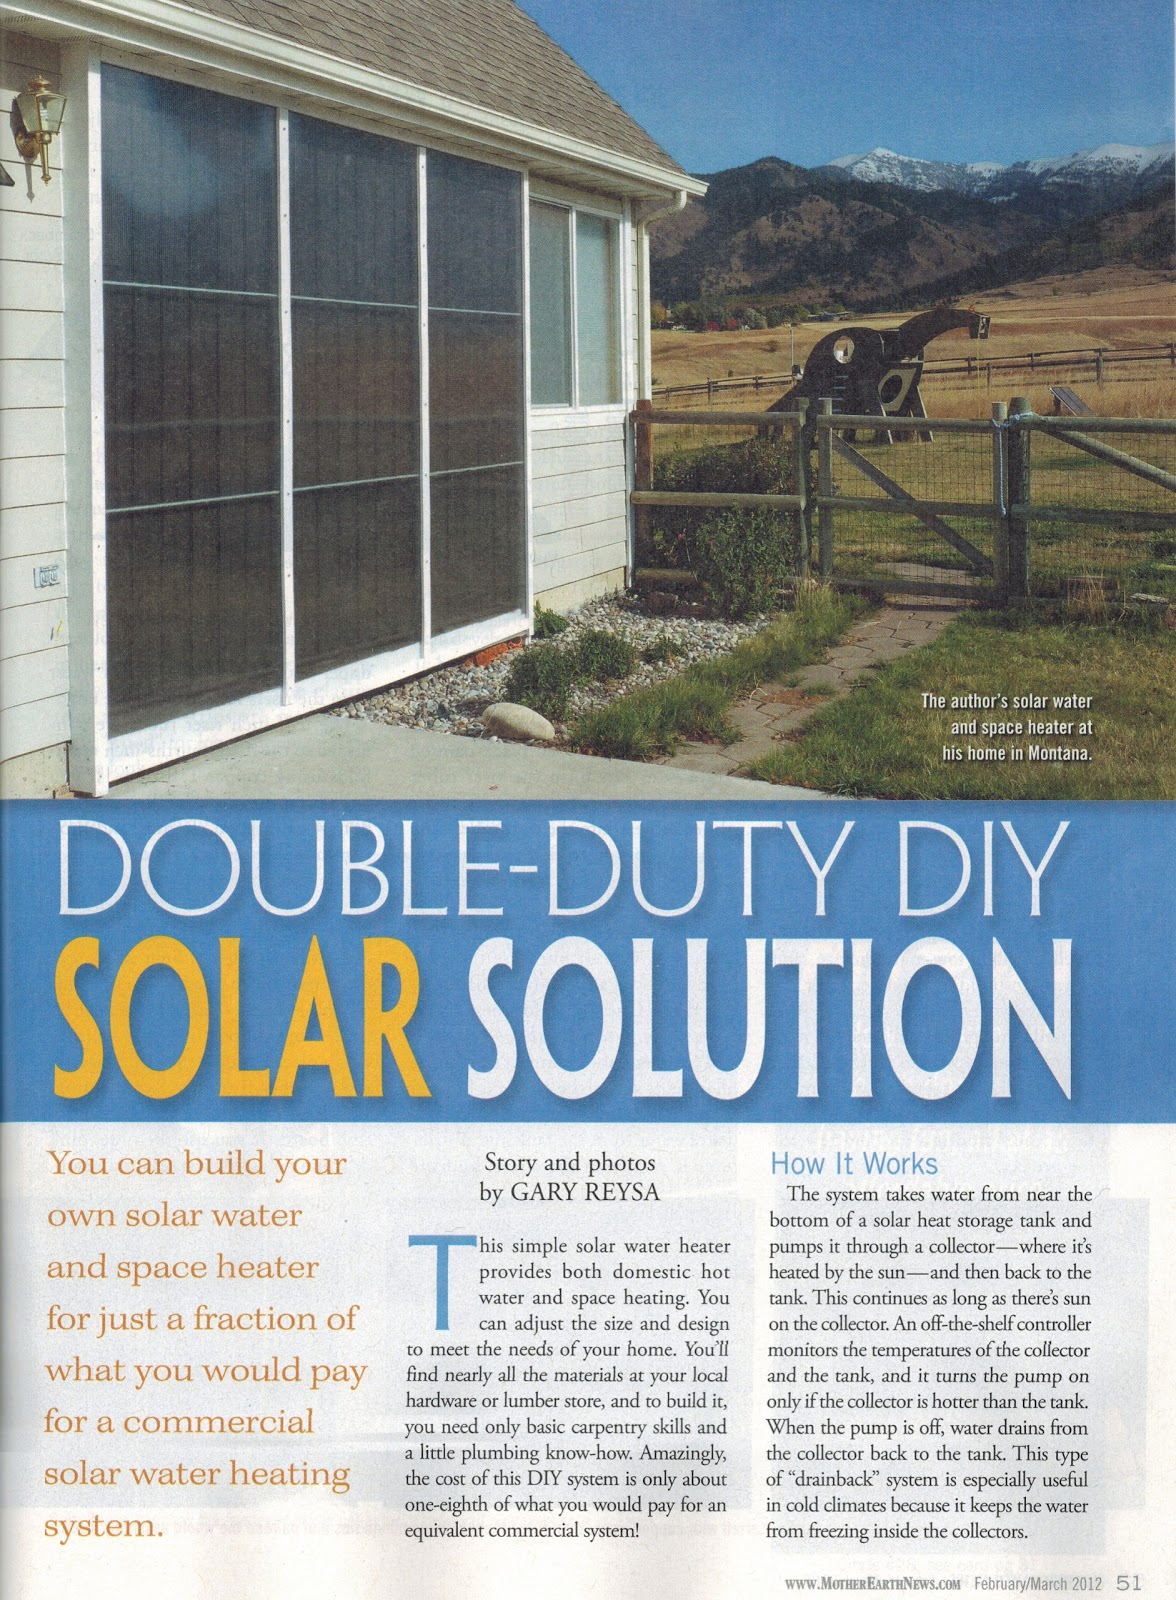 Mother Earth News Article on Our Solar Water and Space Heating System